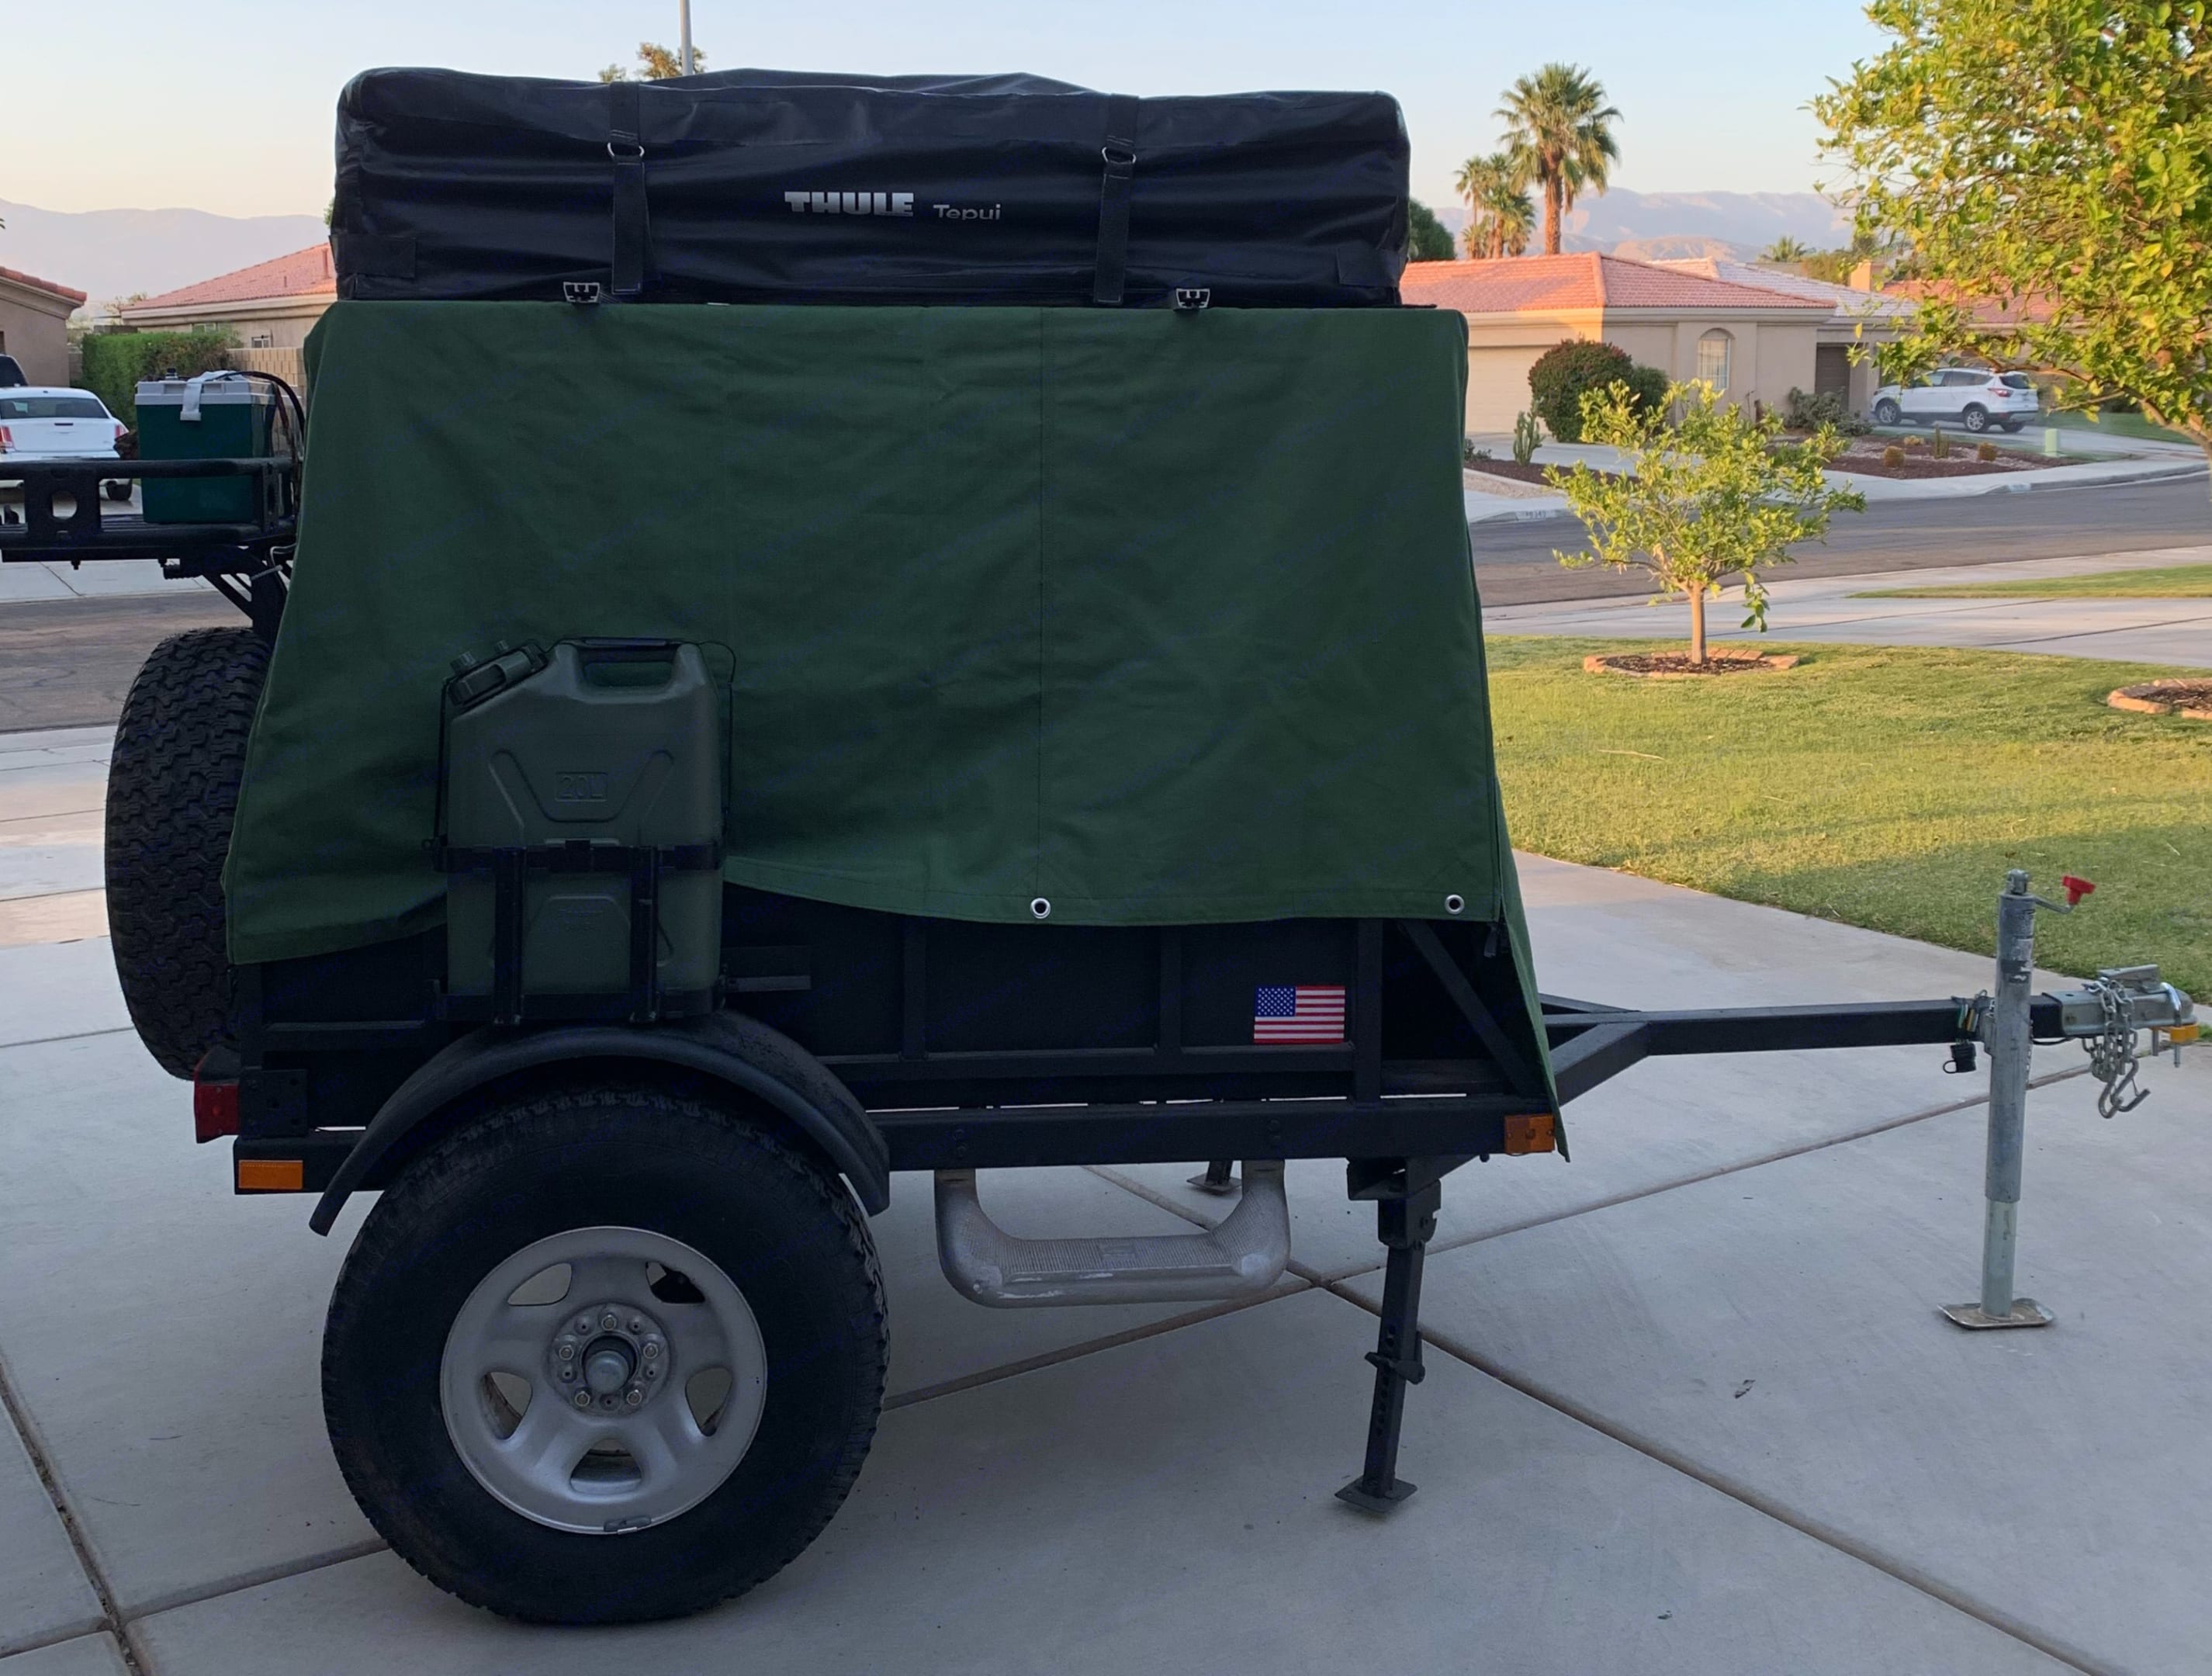 Road Ready! Front Leveling jacks down. Tepui Rooftop Tenet Overland -Utility 2020